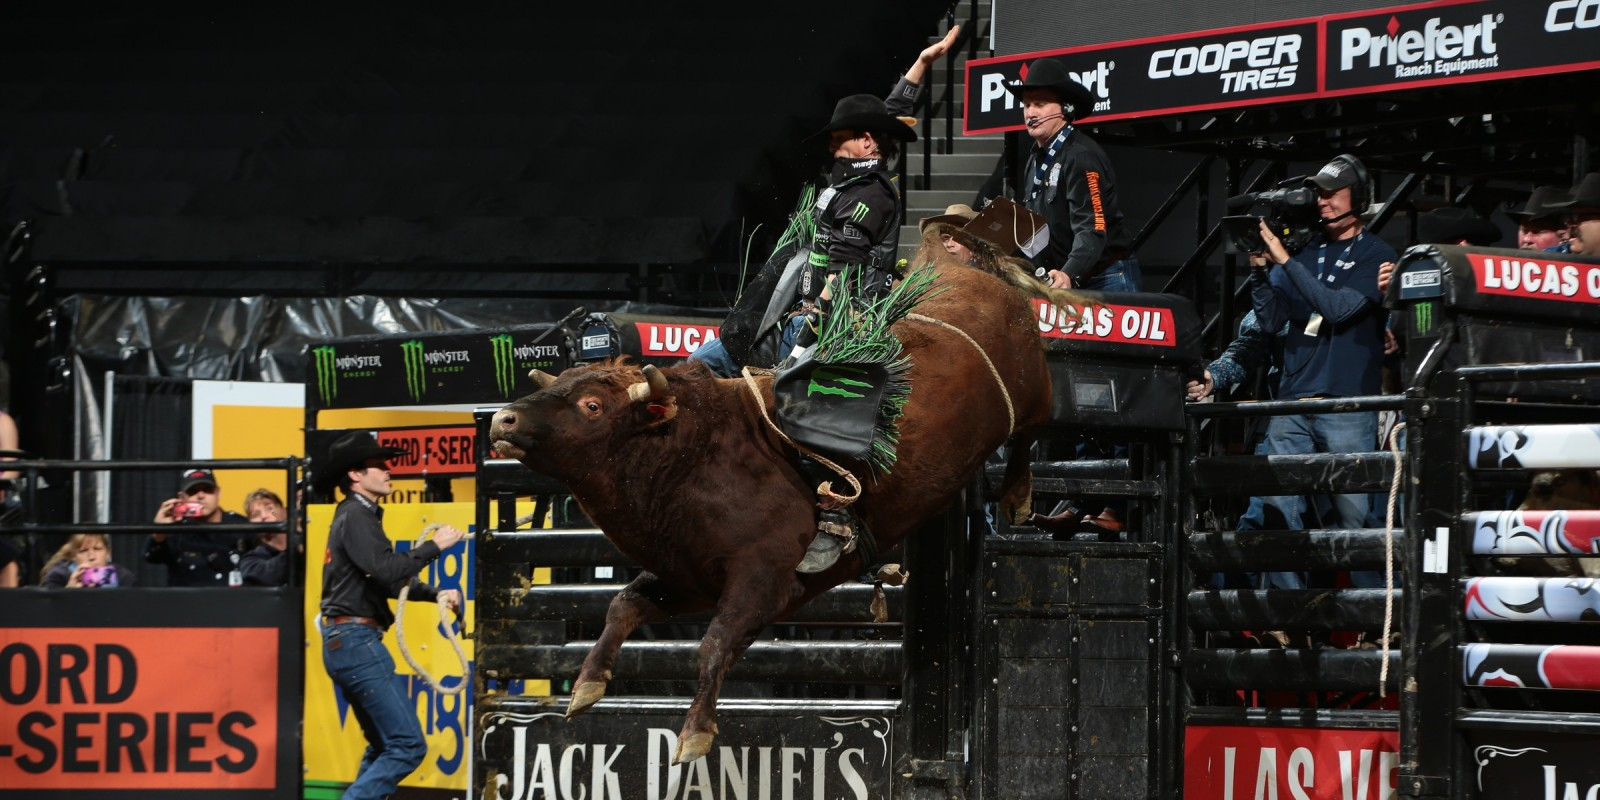 JB Mauney rides Triplett Bucking Bulls's Make You Famous for 83.75 during the first round of the Sacramento Built Ford Tough series PBR